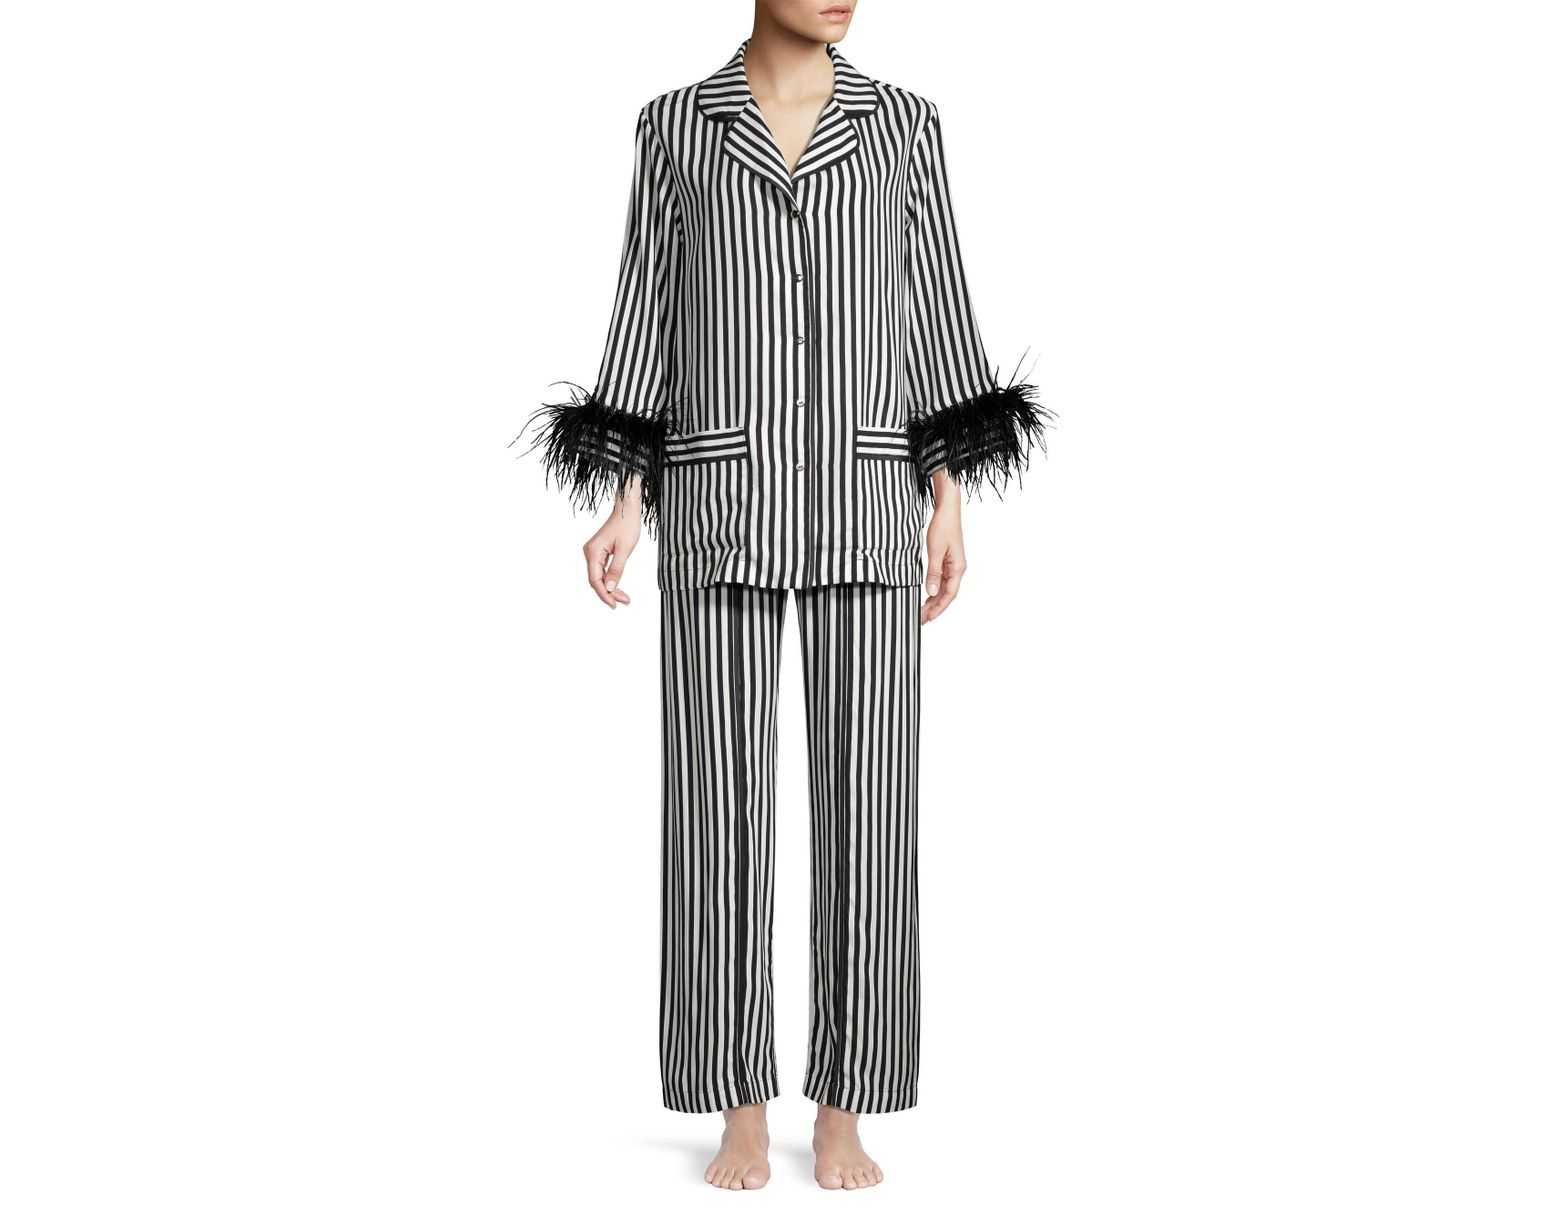 252e1a7bc5081 Sleeper Women's Striped Feather-trim Pajama Pants - Black White in Black -  Save 30% - Lyst